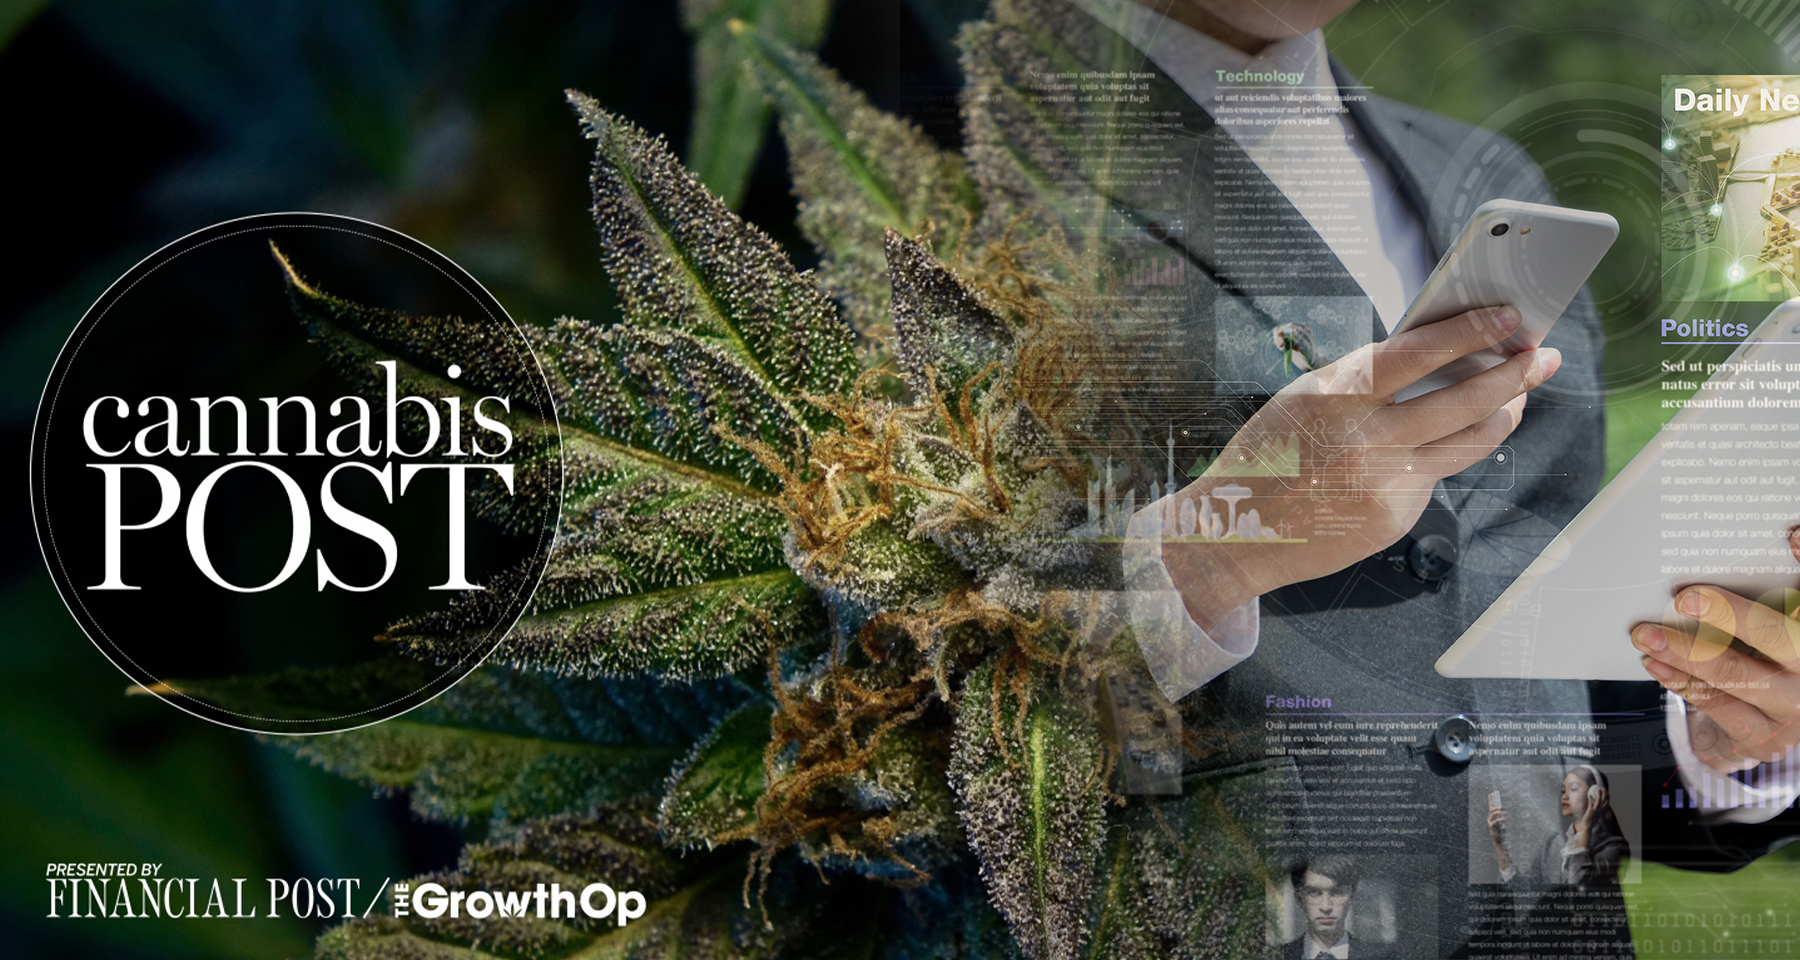 Cannabis Post newsletter creates audience, advertiser opportunities